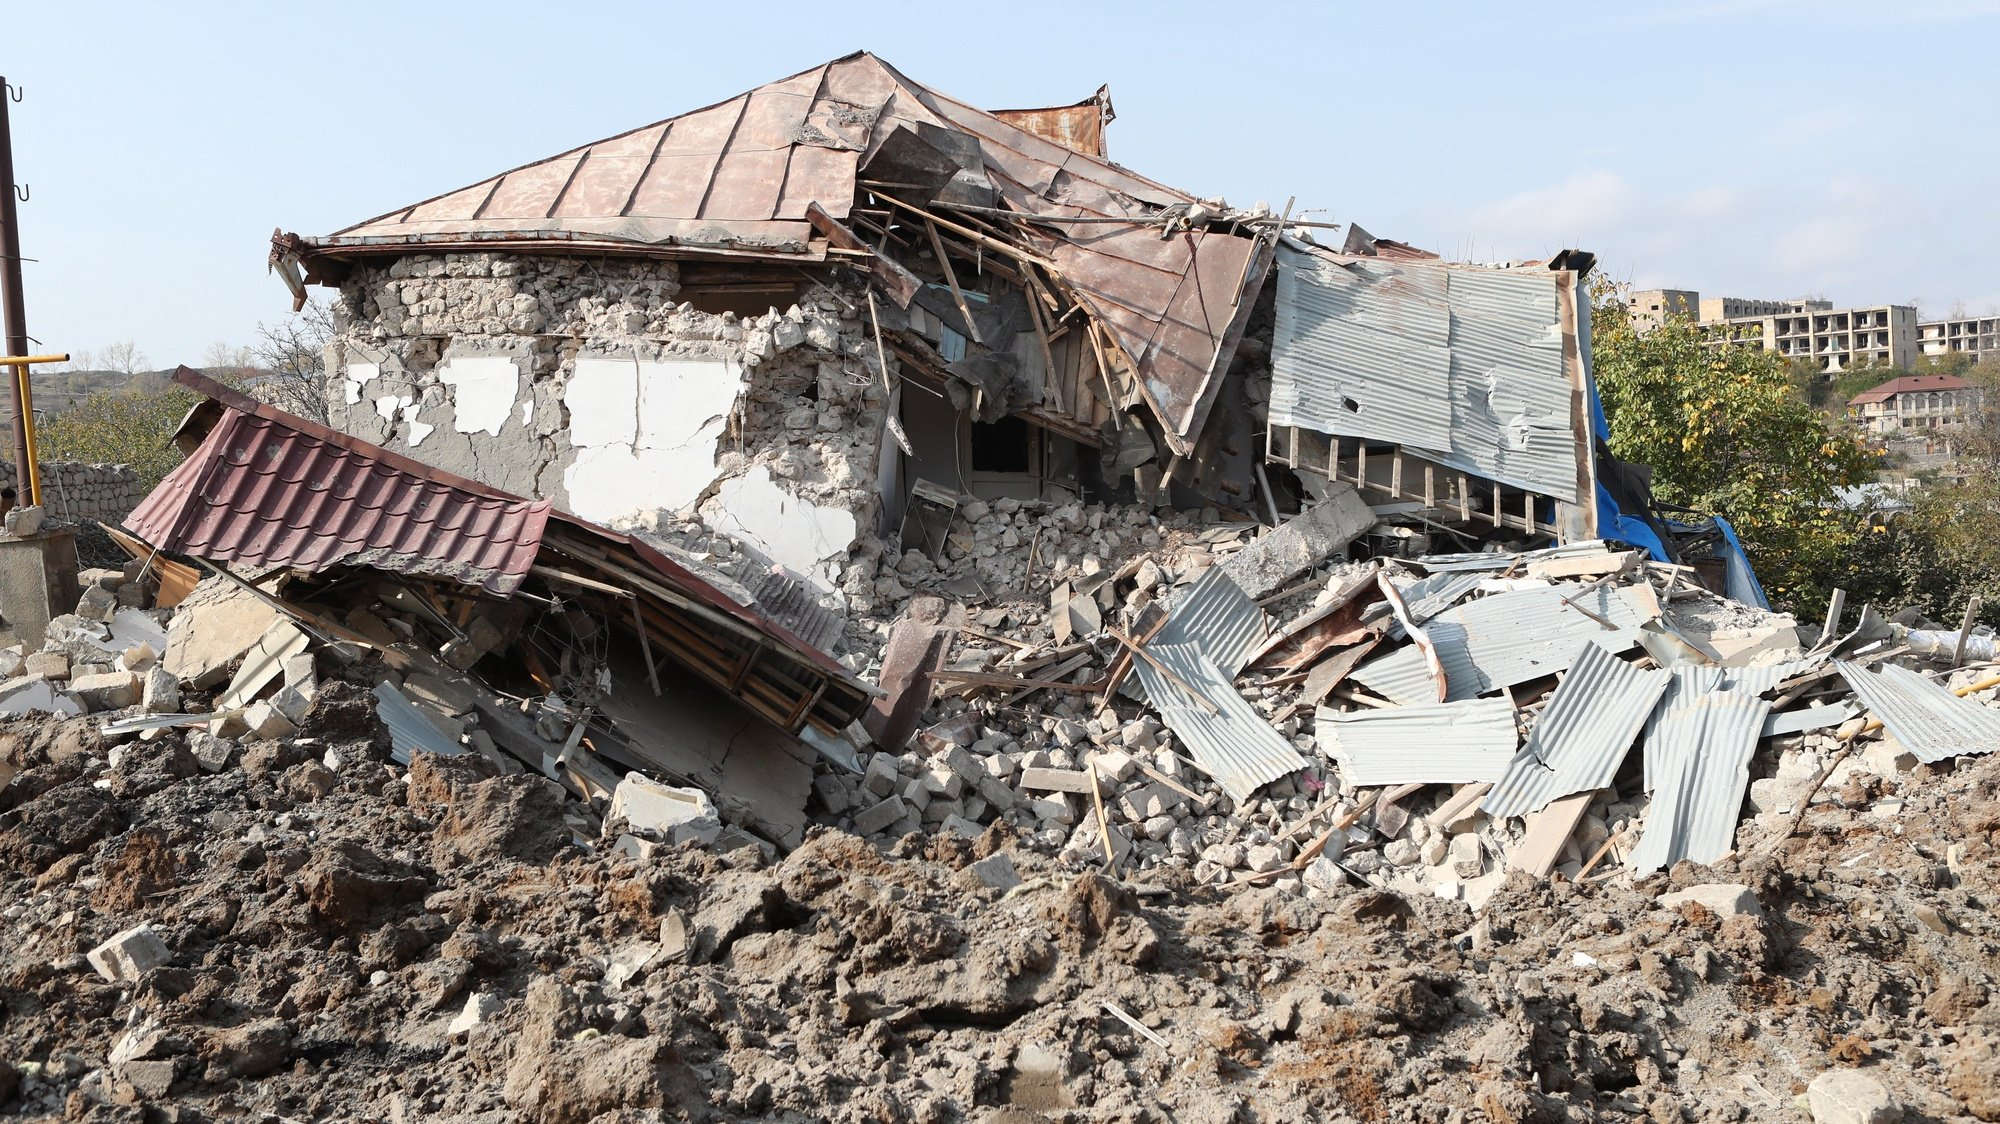 epa08780639 A view of house destroyed by allegedly Azerbaijani shelling in the town of Shushi  (another spelling Shusha) in Nagorno-Karabakh, 28 October 2020. Armed clashes erupted on 27 September 2020 in the simmering territorial conflict between Azerbaijan and Armenia over the Nagorno-Karabakh territory along the contact line of the self-proclaimed Nagorno-Karabakh Republic (also known as Artsakh).  EPA/HAYK BAGHDASARYAN /PHOTOLURE